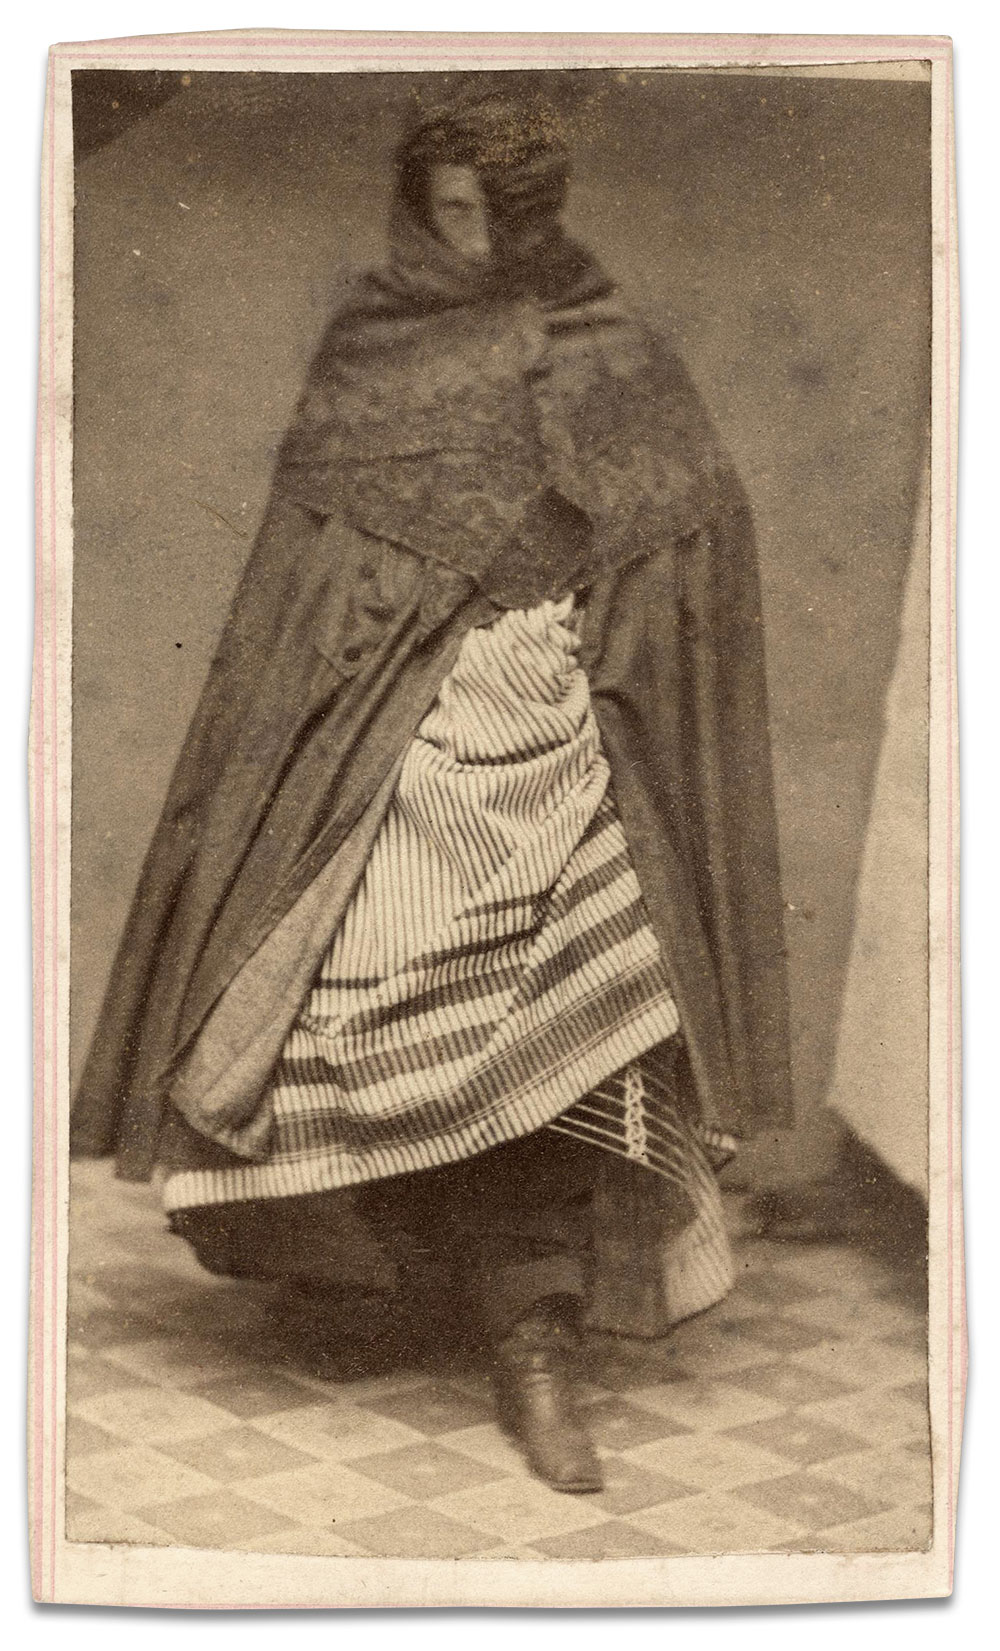 Carte de visite by Ad. Loewenthal of Williamsburgh, N.Y. Copyright 2015 by Gary Bart, all rights reserved.